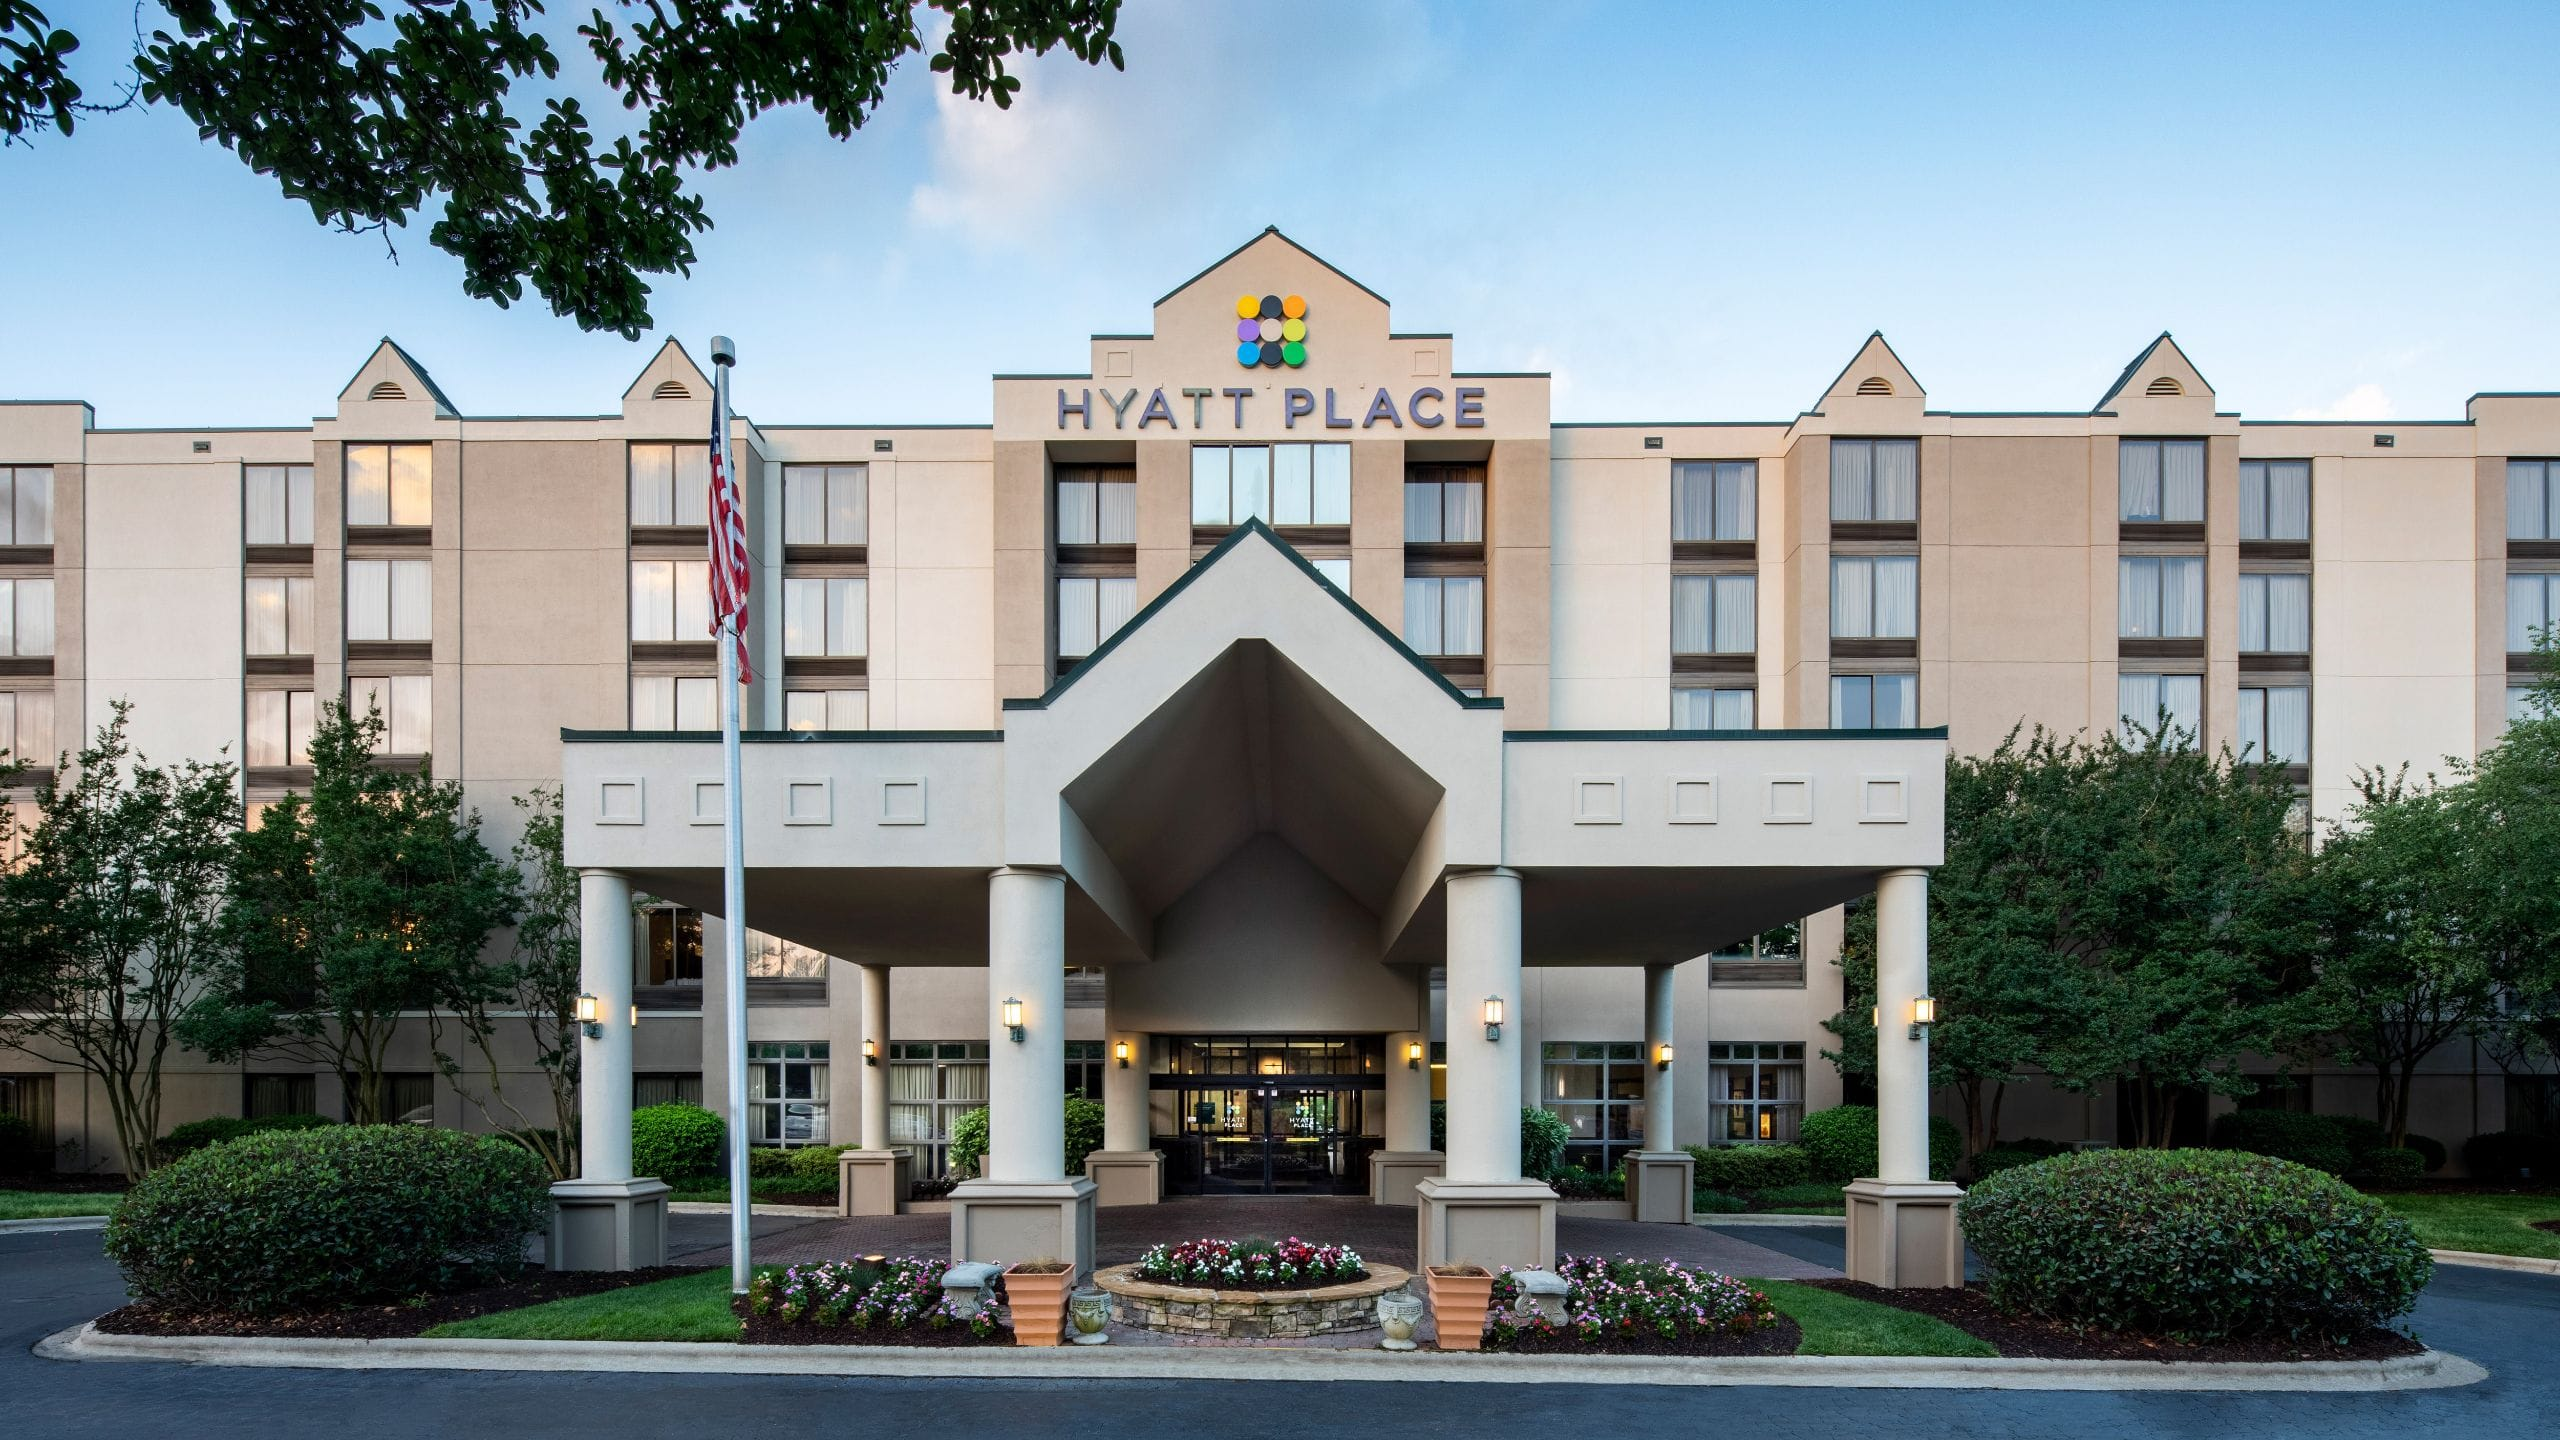 Modern Roanoke VA Hotel | Hyatt Place Roanoke Airport